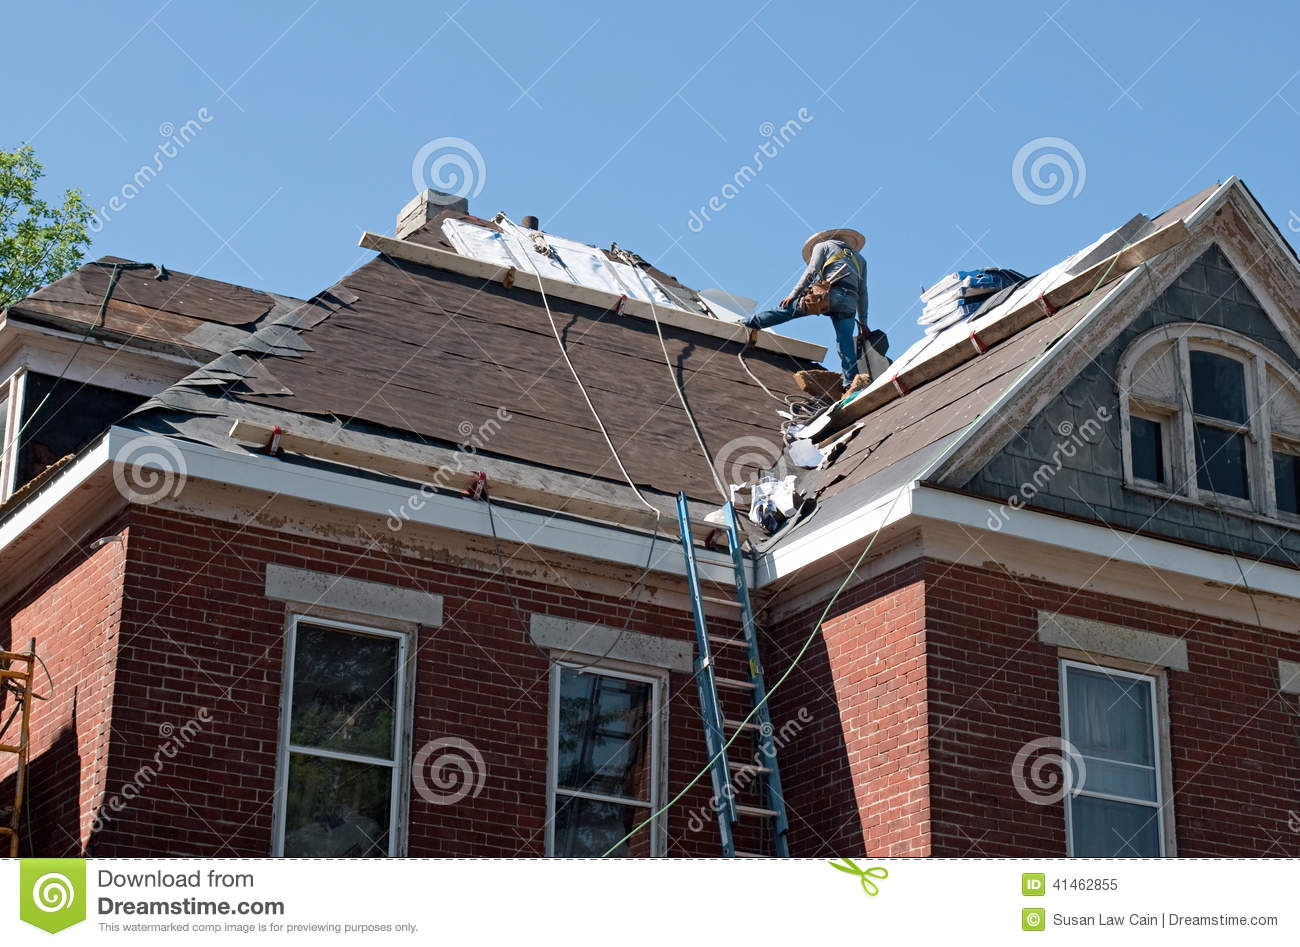 Roof Repair On Historic House Stock Photo Image 41462855